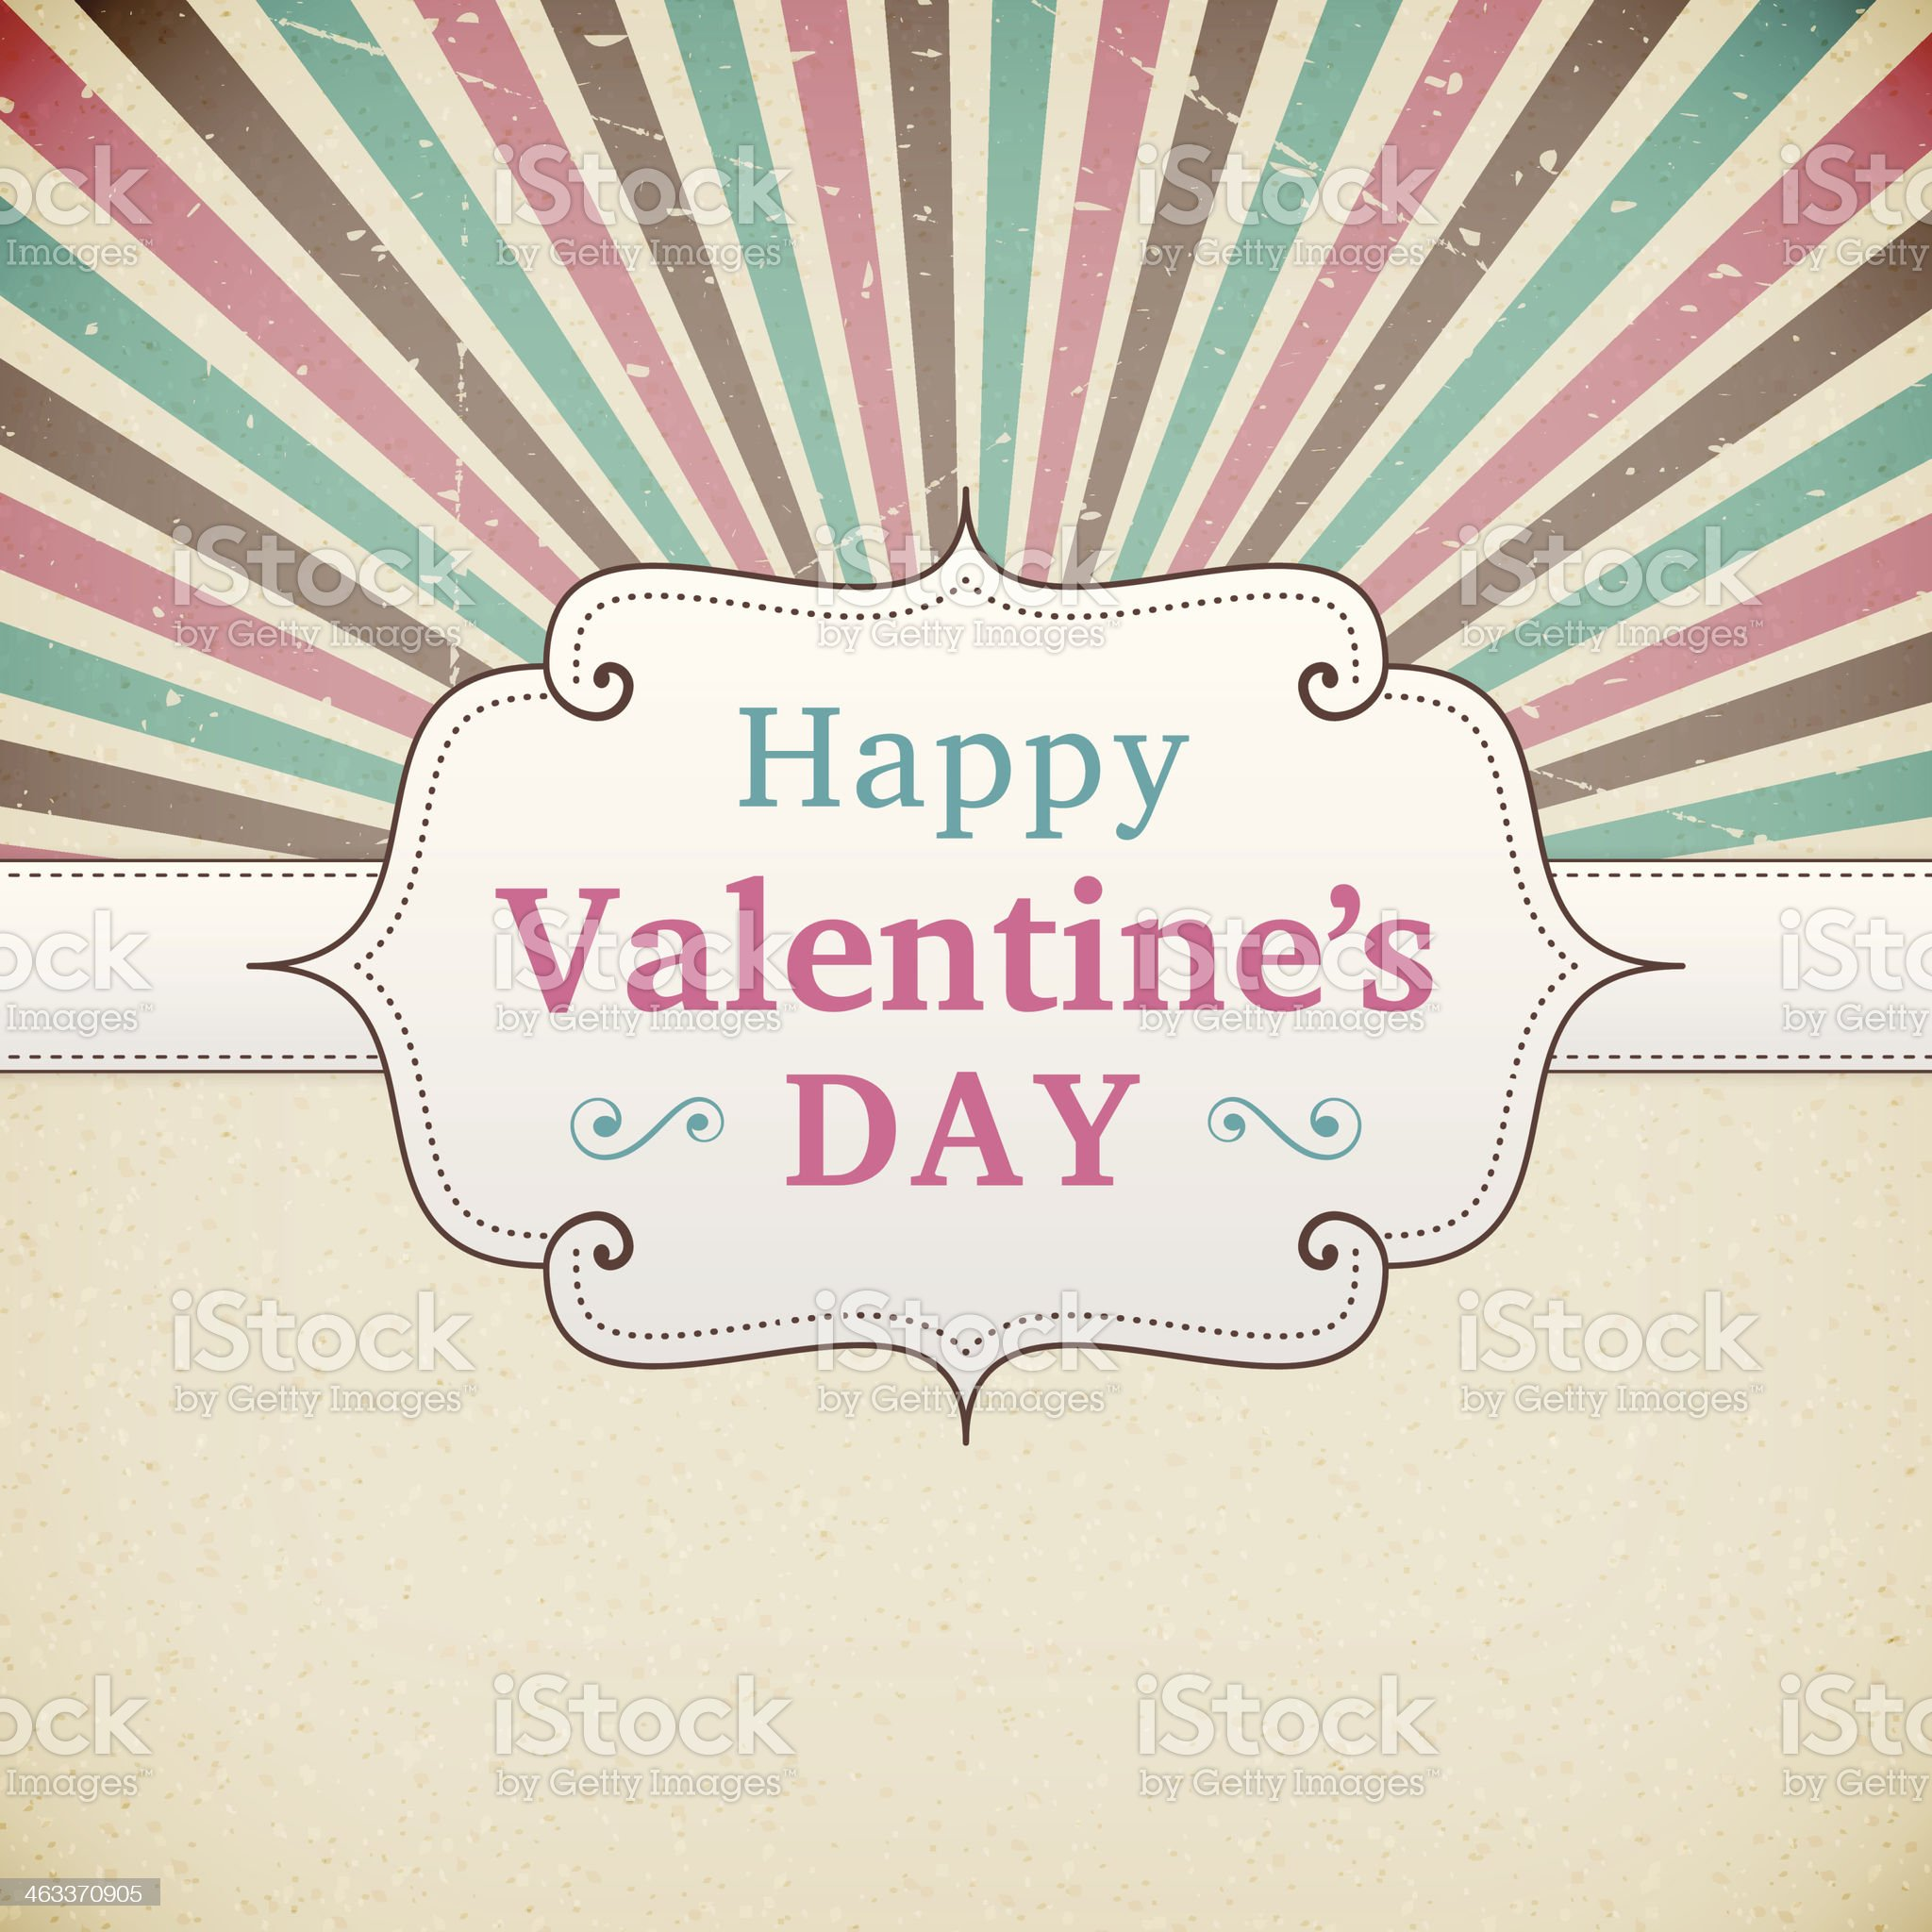 Valentine's Day retro poster royalty-free stock vector art